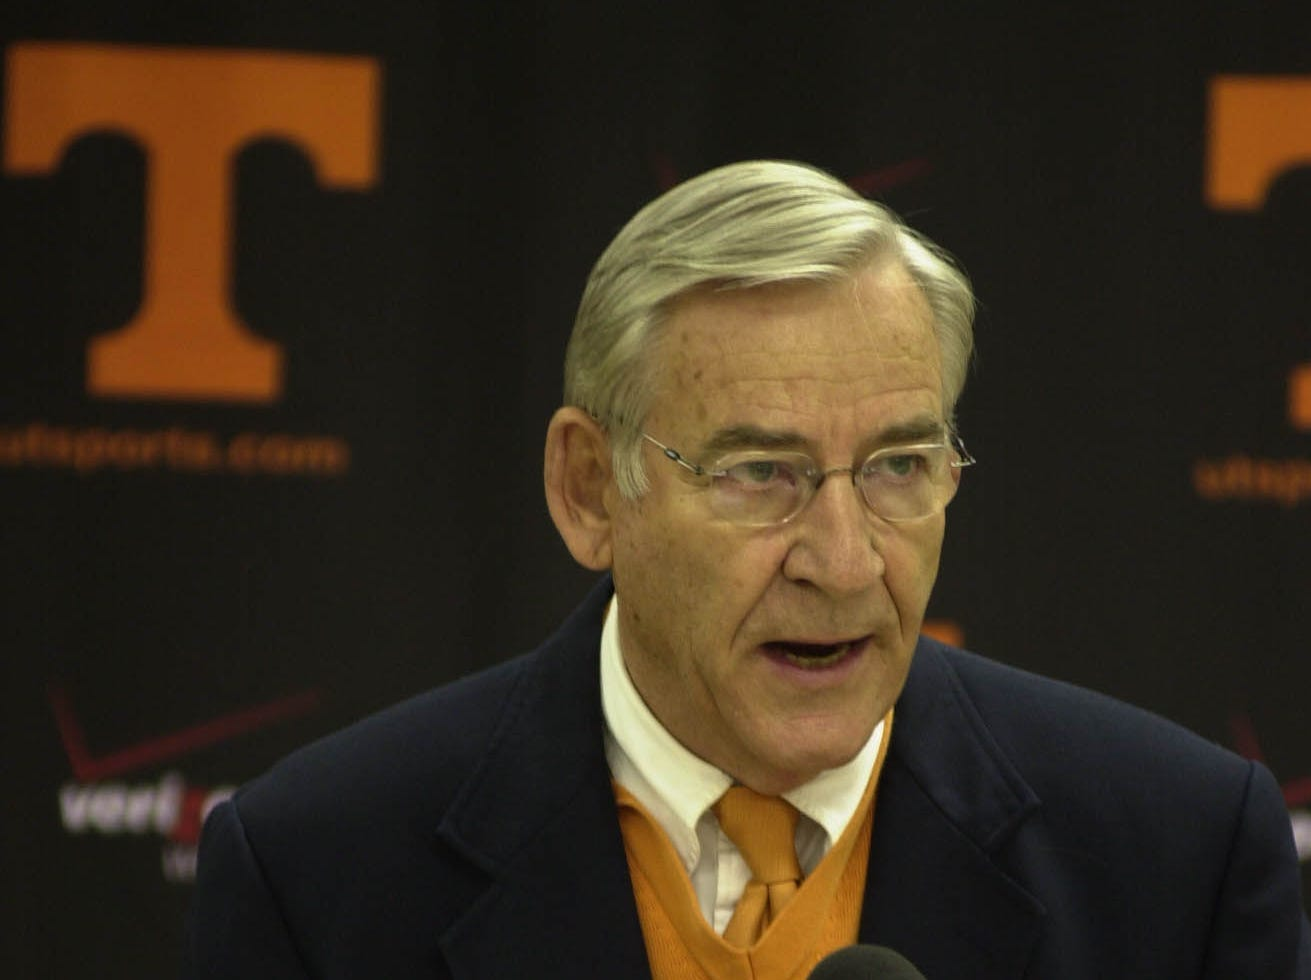 UT Athletics Director Doug Dickey speaks to the media about investigations into the Tennessee football program.